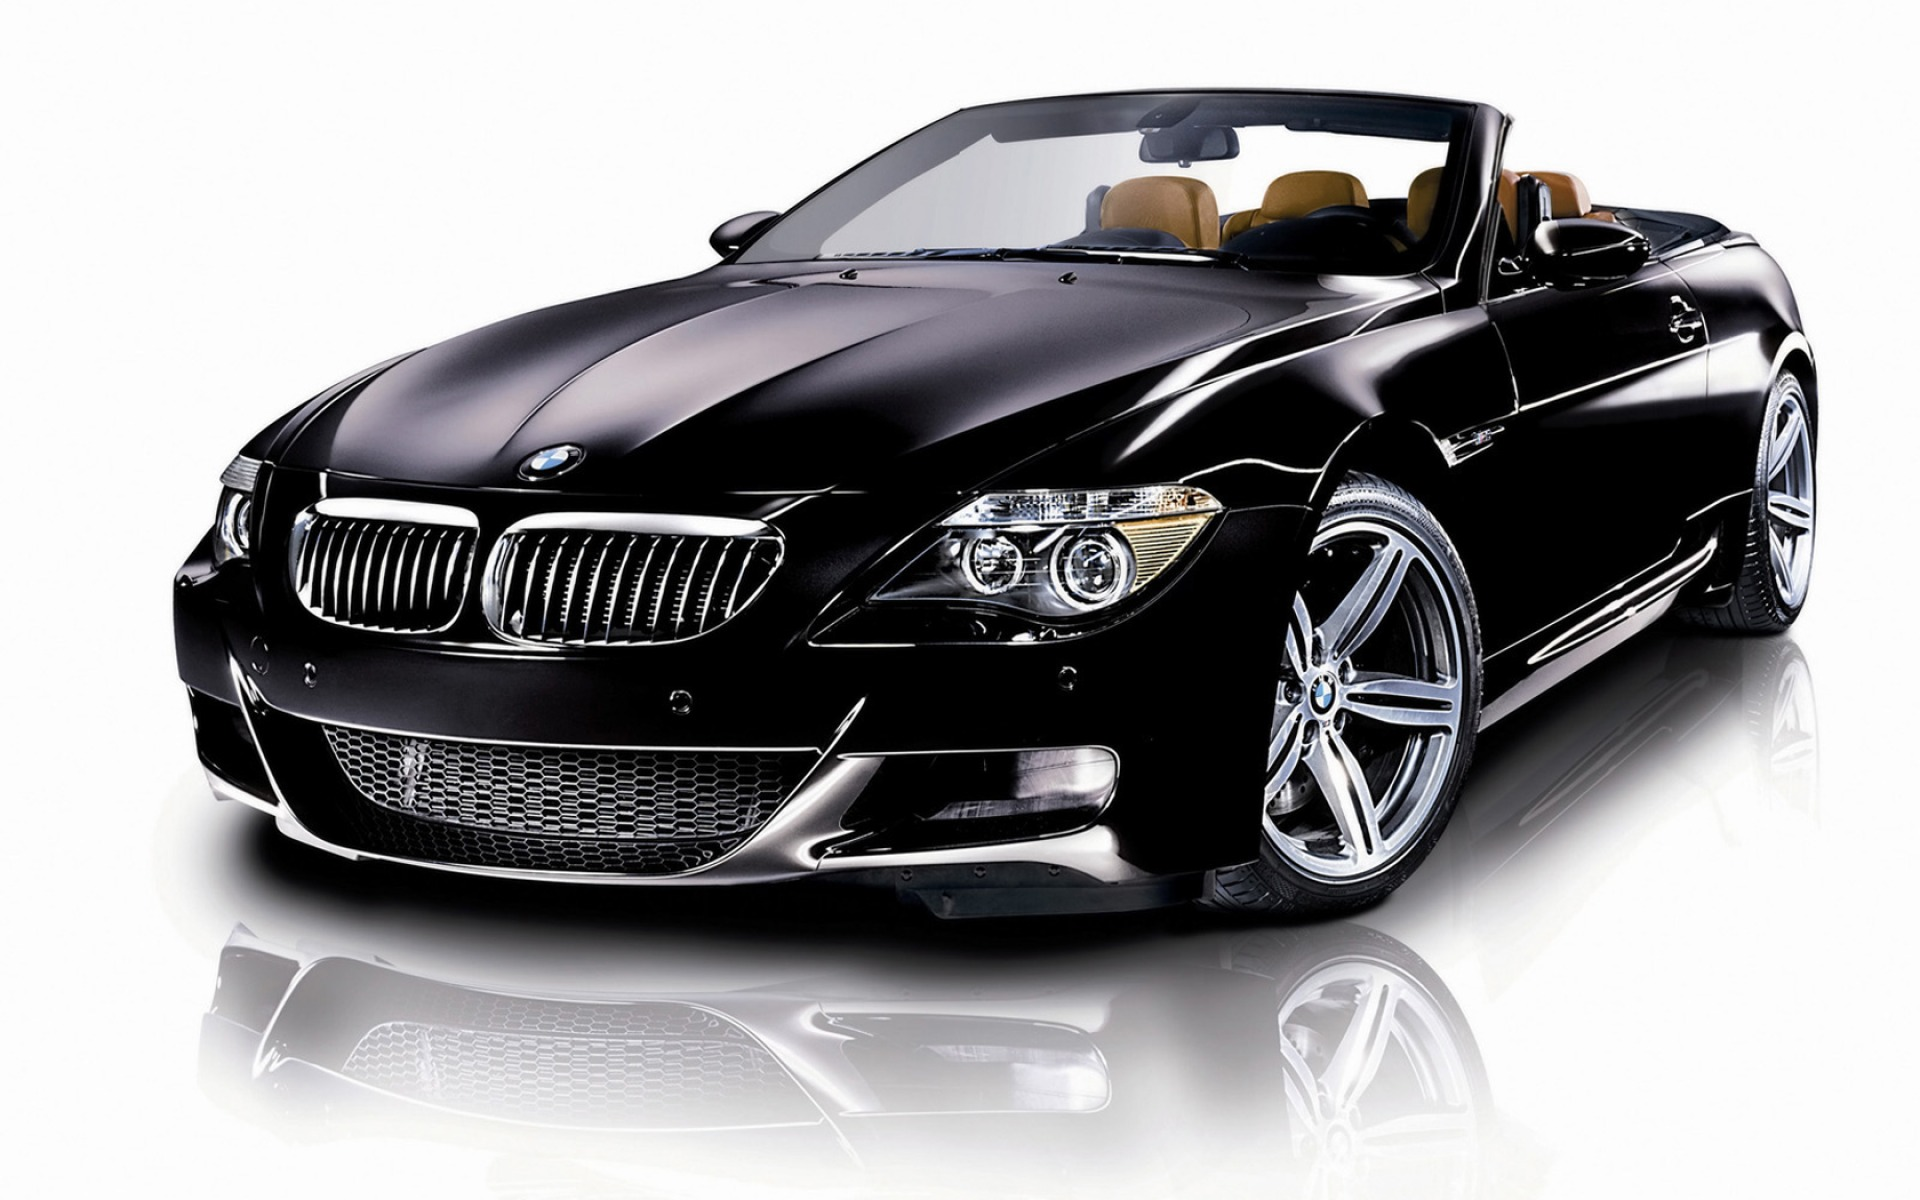 Ultrablogus  Unusual Bmw Car Wallpaper Wallpapers For Free Download About   With Engaging Bmw M Convertible Wallpaper Bmw Cars With Comely Rs Interior Also G Wagon Interior In Addition Interior Of Bmw X And Sorento Interior As Well As  Passat Interior Additionally Focus Titanium Interior From Allfreedownloadcom With Ultrablogus  Engaging Bmw Car Wallpaper Wallpapers For Free Download About   With Comely Bmw M Convertible Wallpaper Bmw Cars And Unusual Rs Interior Also G Wagon Interior In Addition Interior Of Bmw X From Allfreedownloadcom